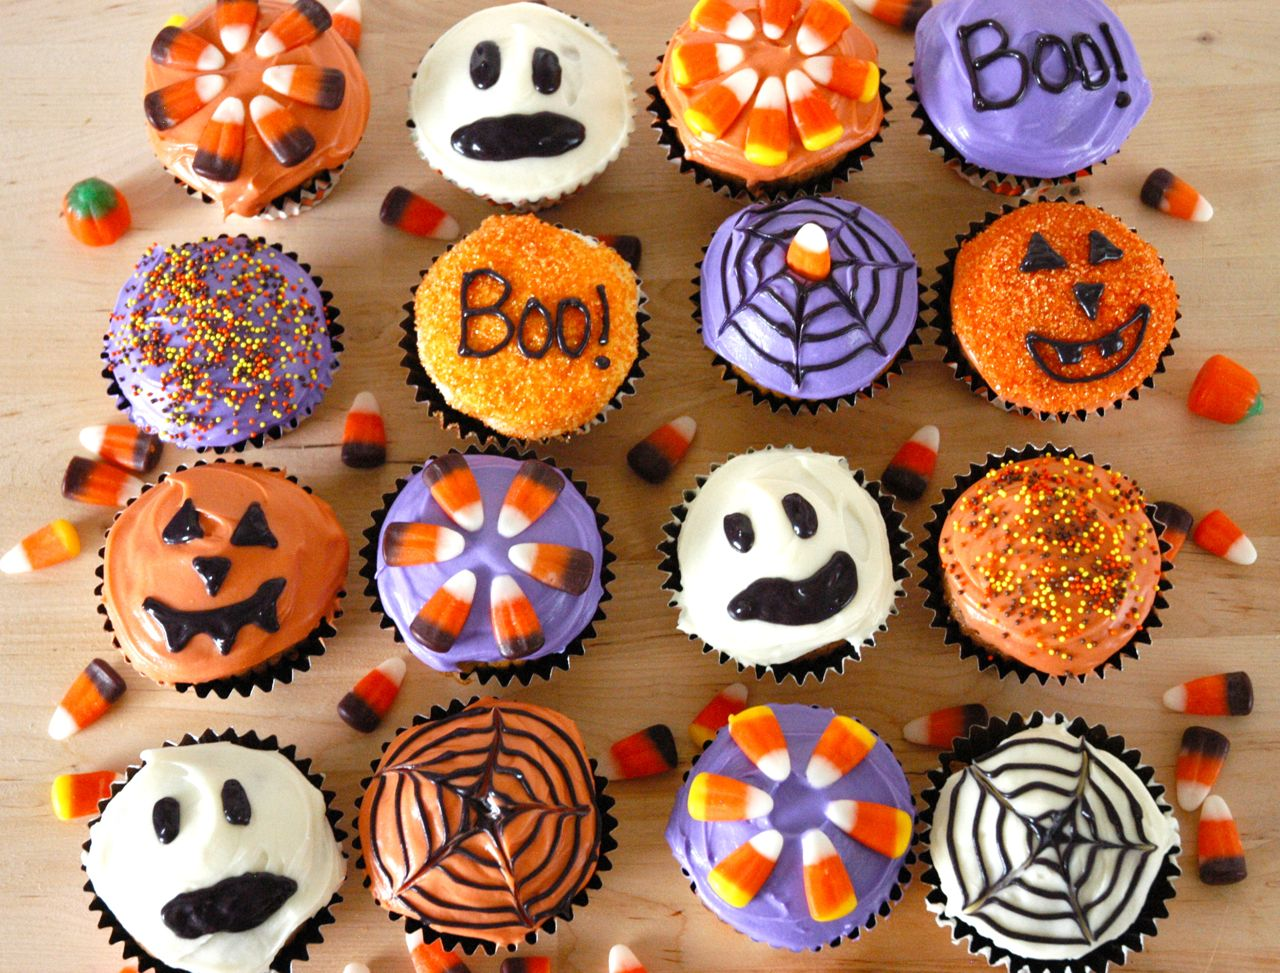 Goddess of baking spiced pumpkin cupcakes for halloween Halloween cupcakes